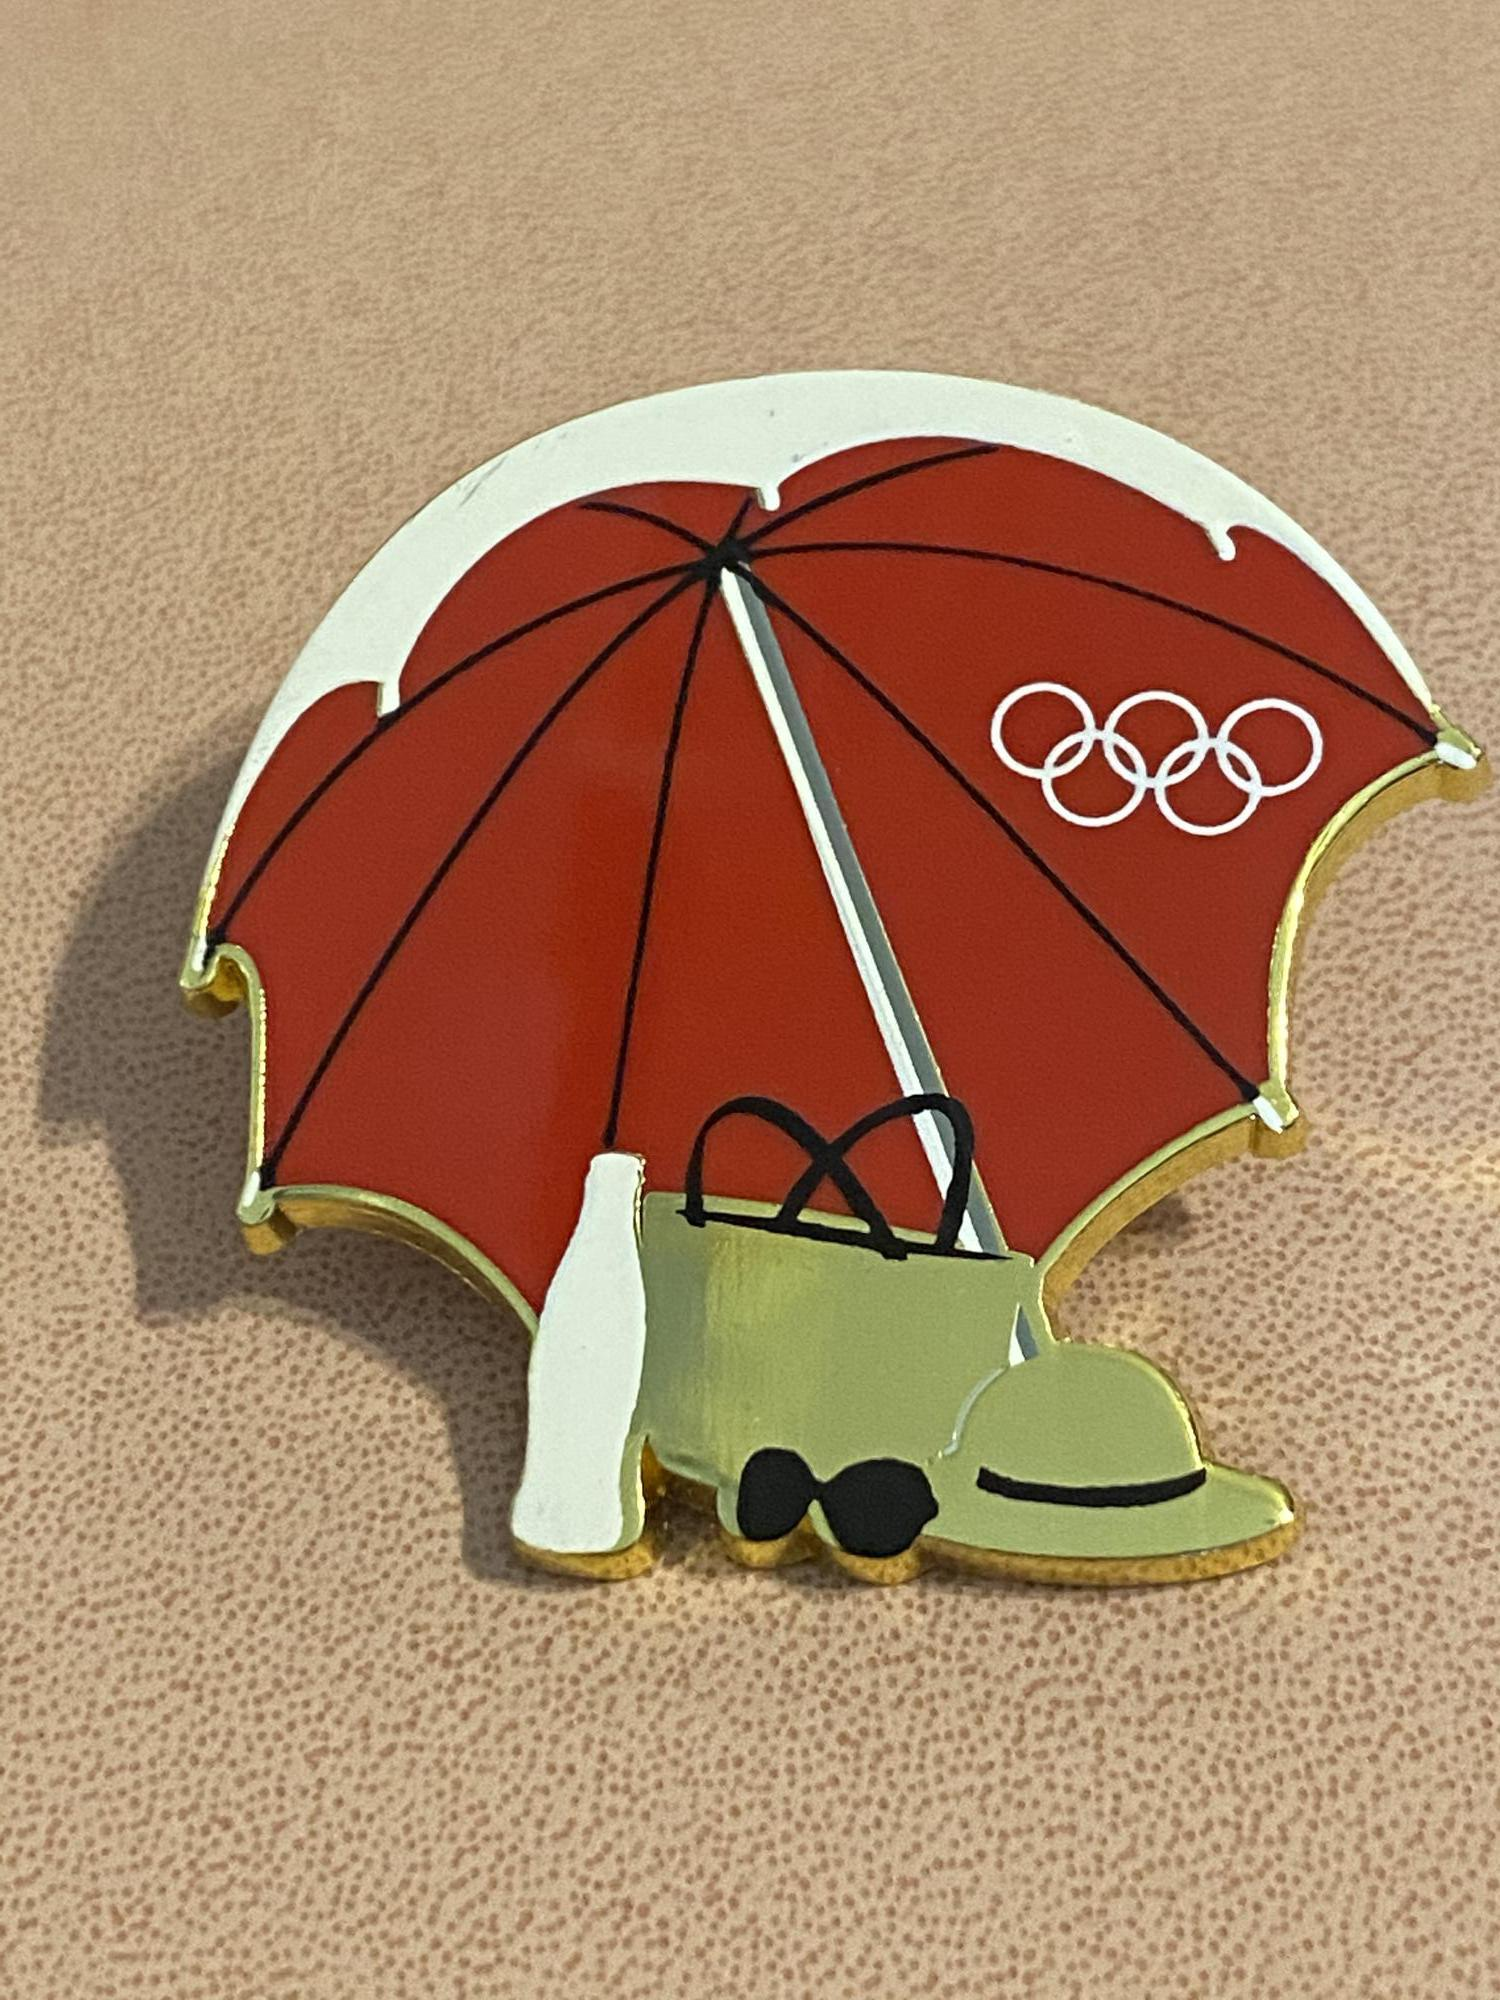 Coca-Cola (Coke) Umbrella Rio Pin